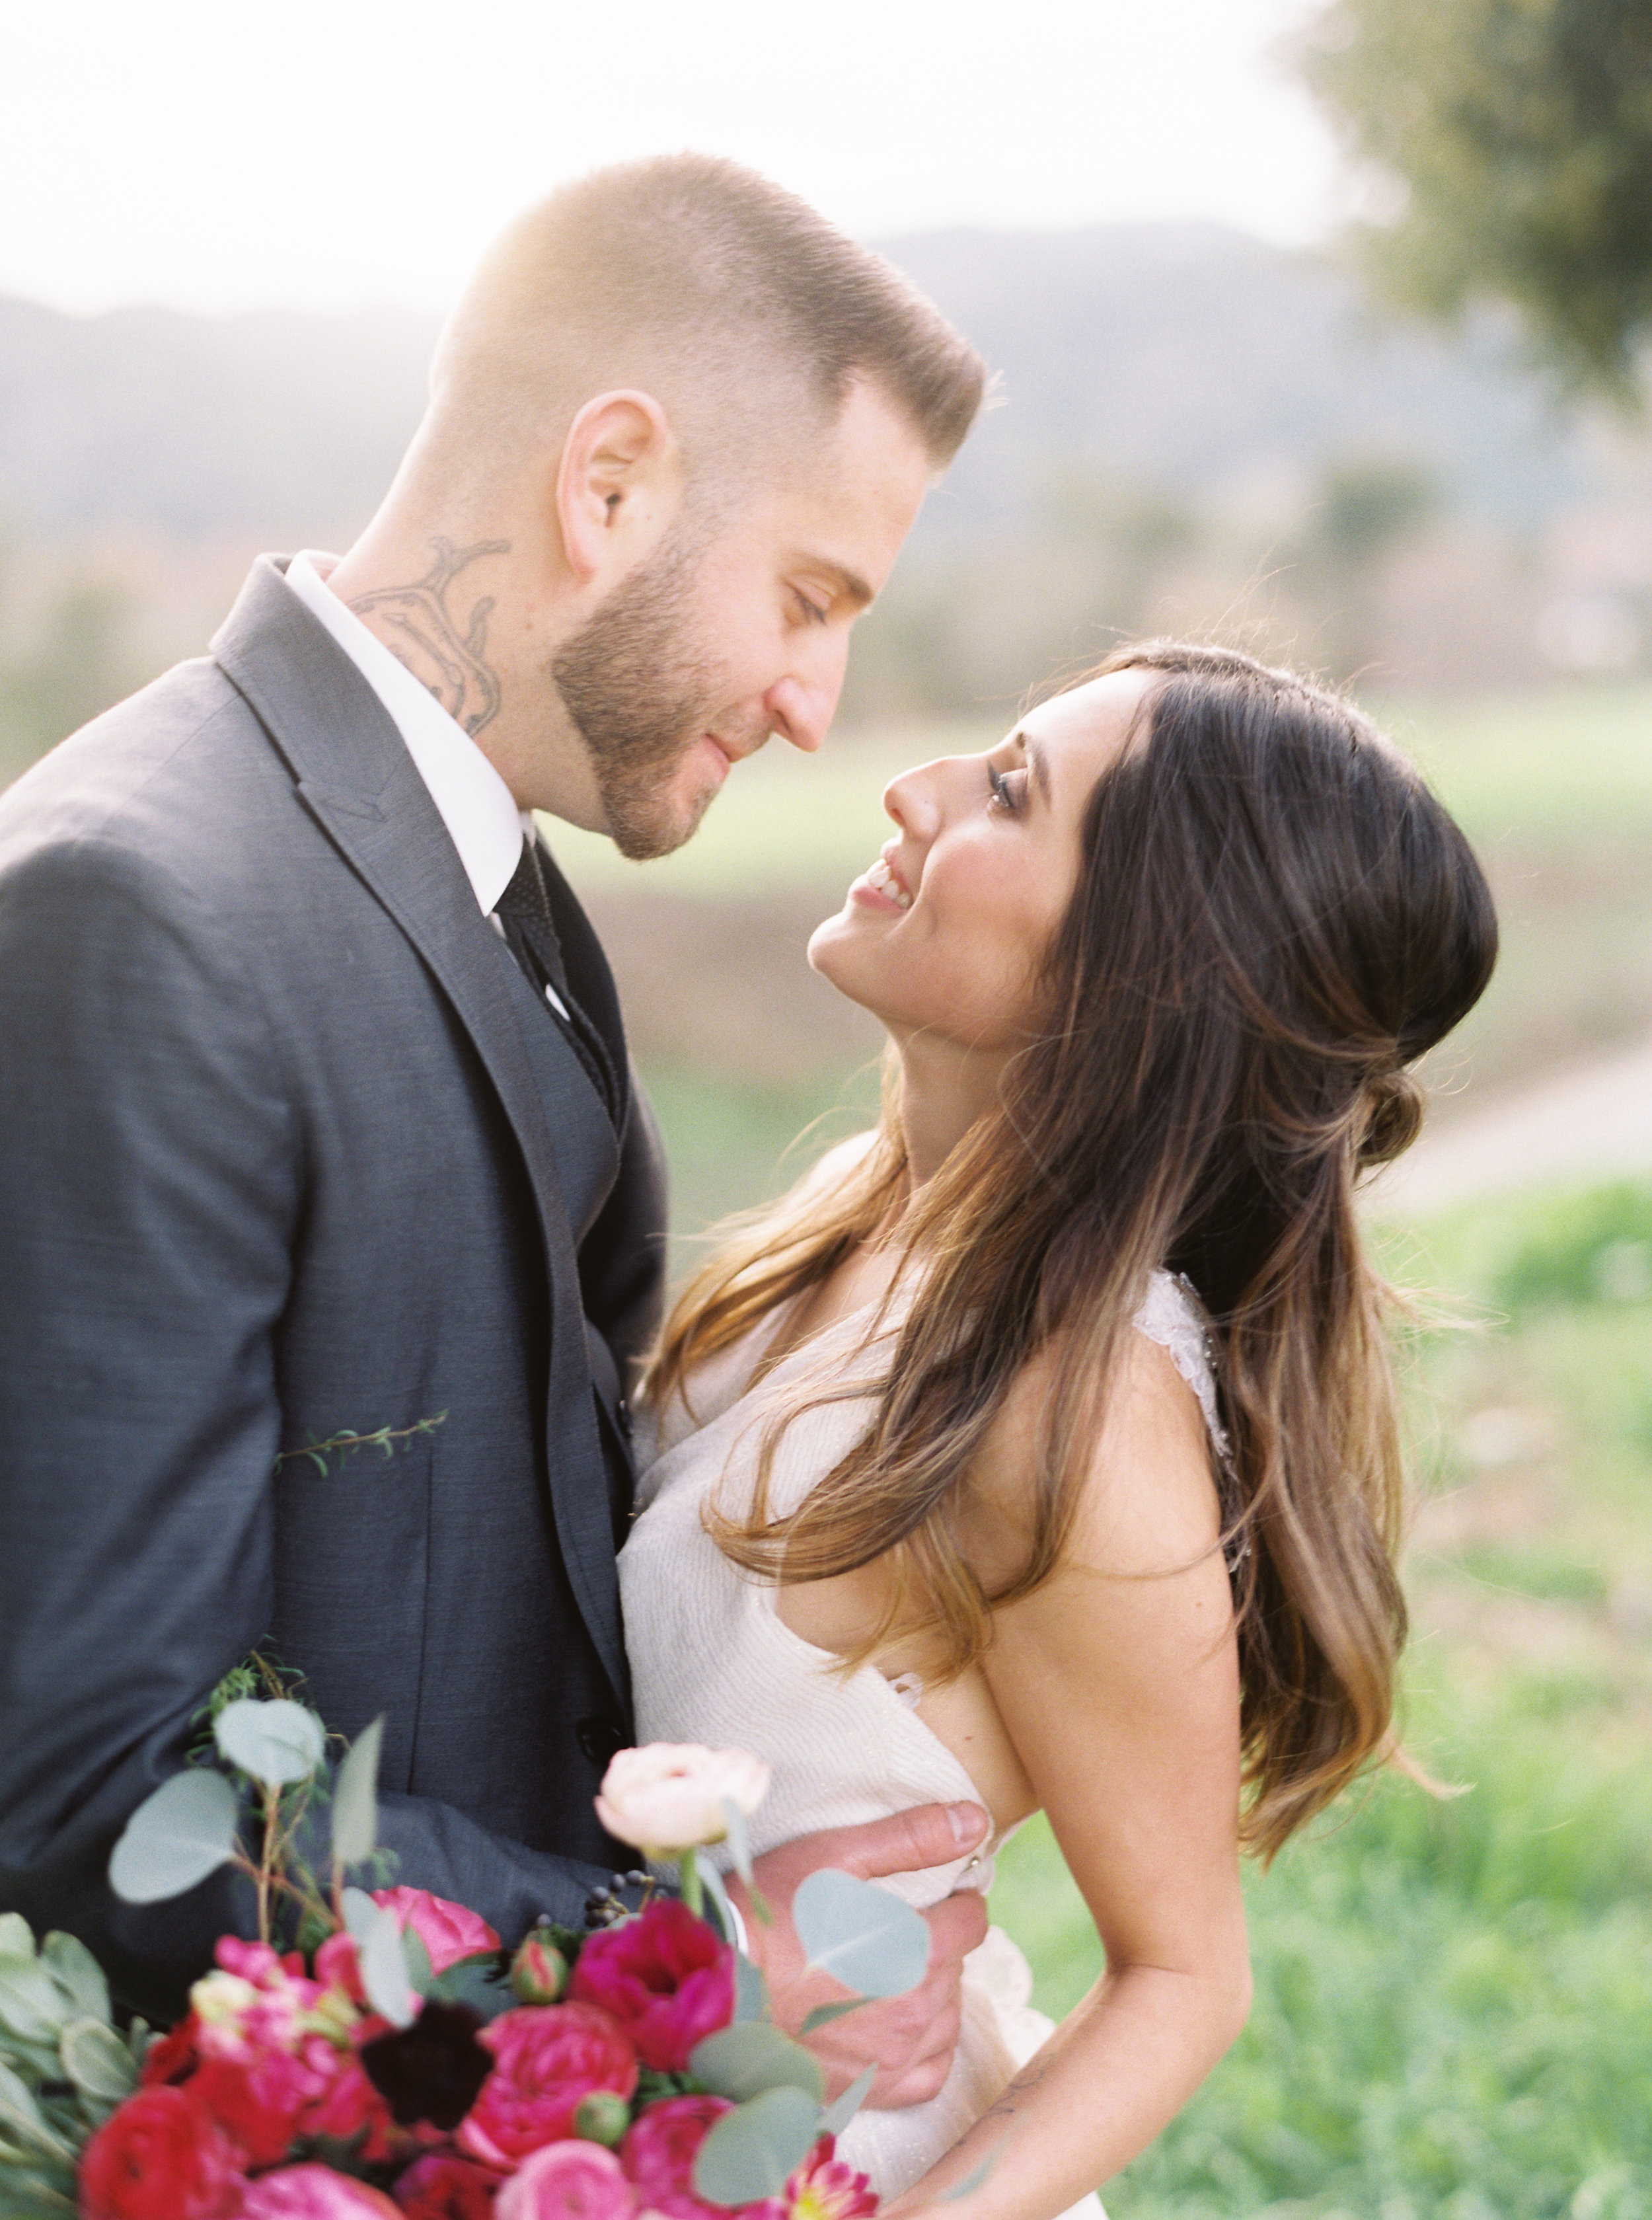 boho-inspired-wedding-at-casa-bella-in-sunol-california-52.jpg